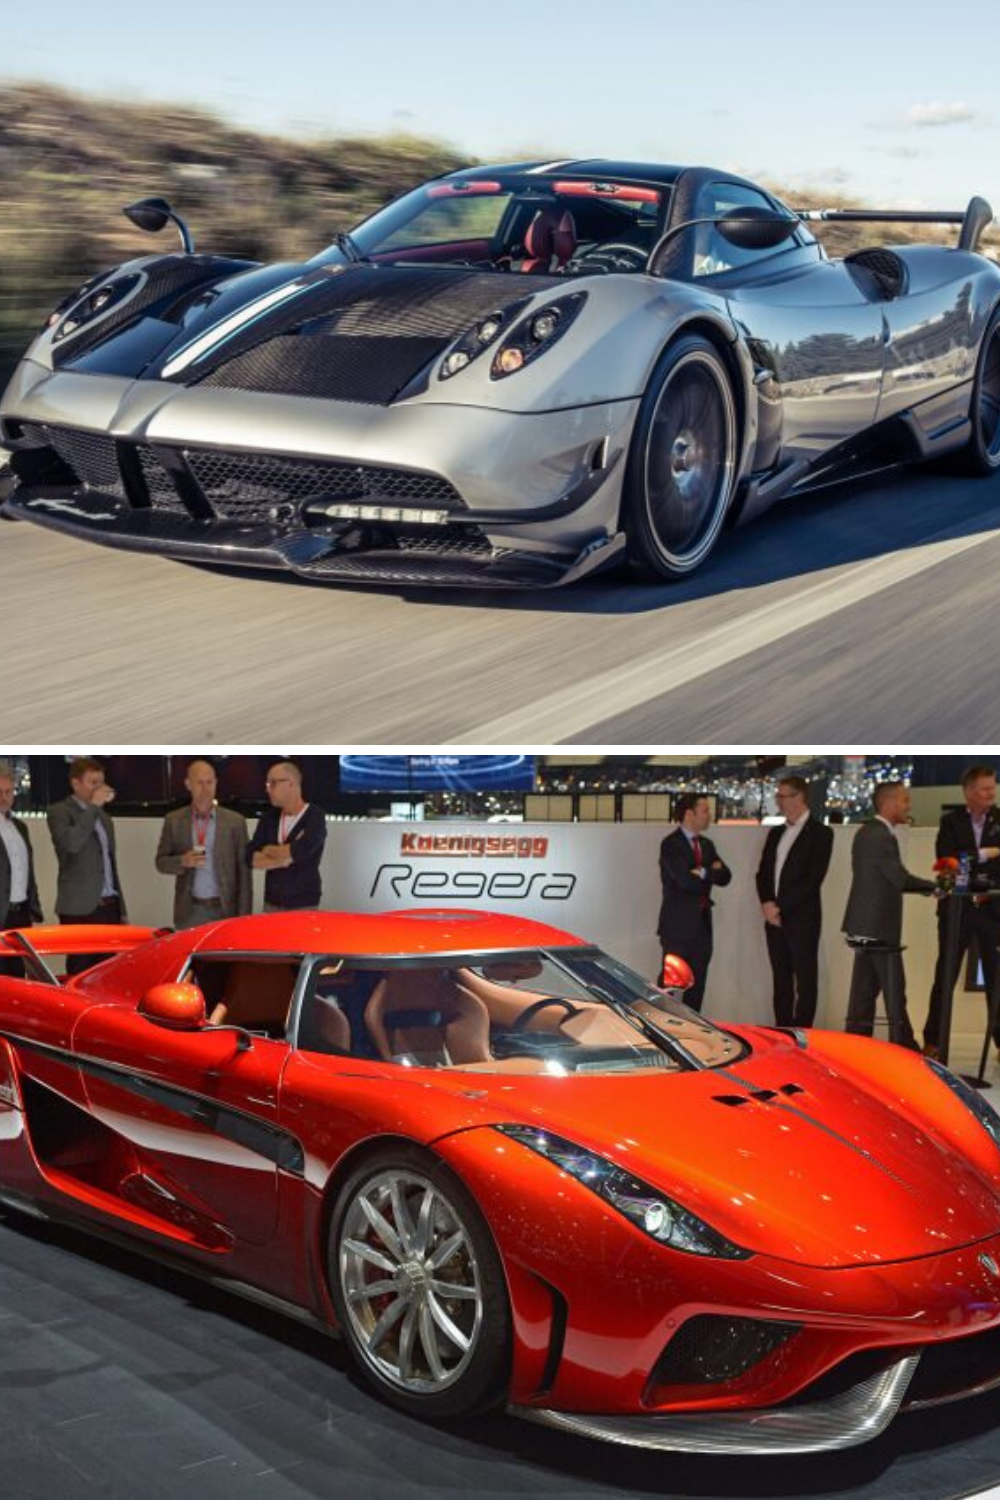 10 Supercars Costing North Of 2 Million In 2020 Super Cars Expensive Cars Car Design Sketch